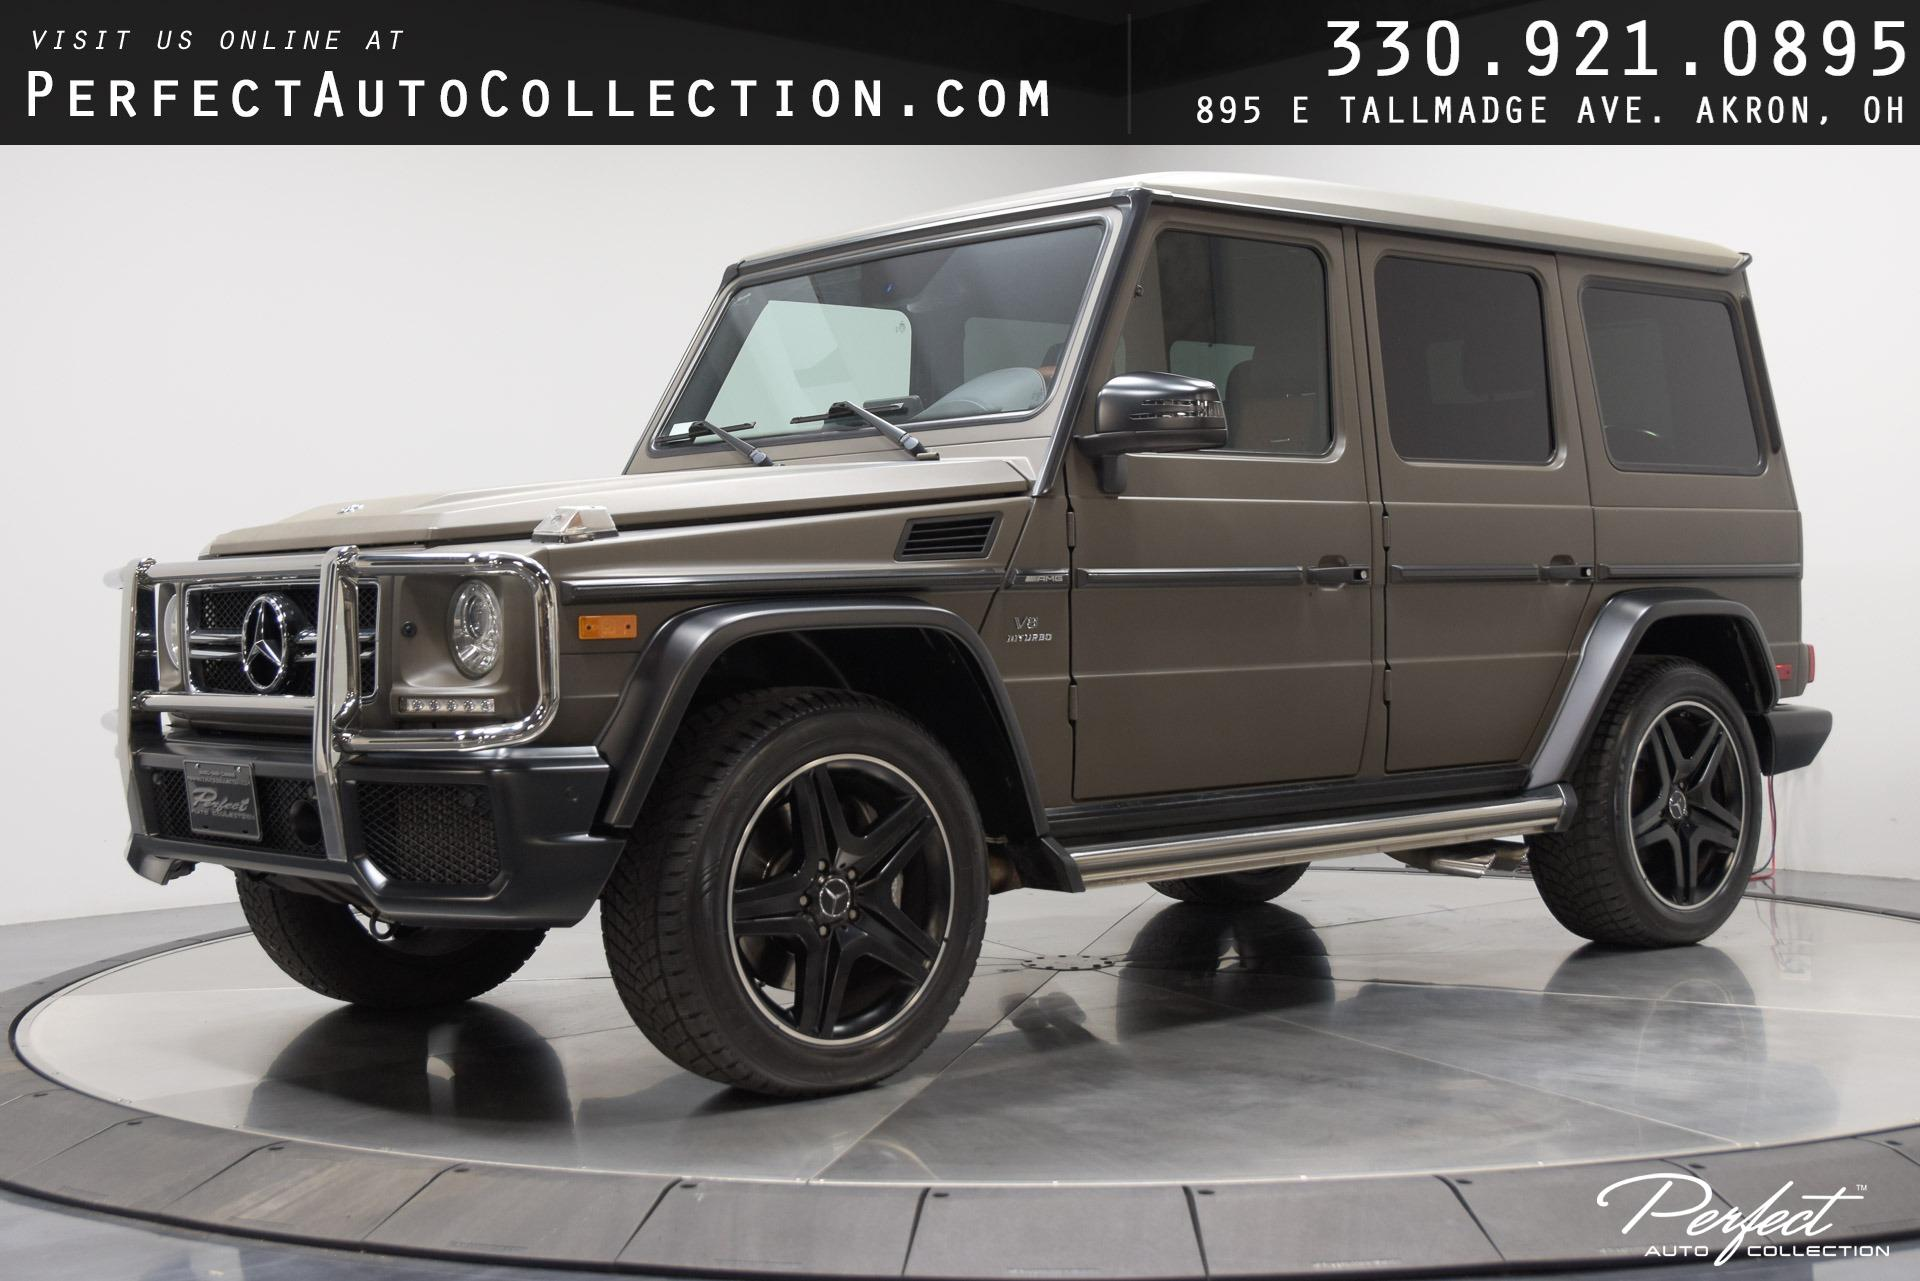 Used 2017 Mercedes-Benz G-Class AMG G 63 for sale Sold at Perfect Auto Collection in Akron OH 44310 1